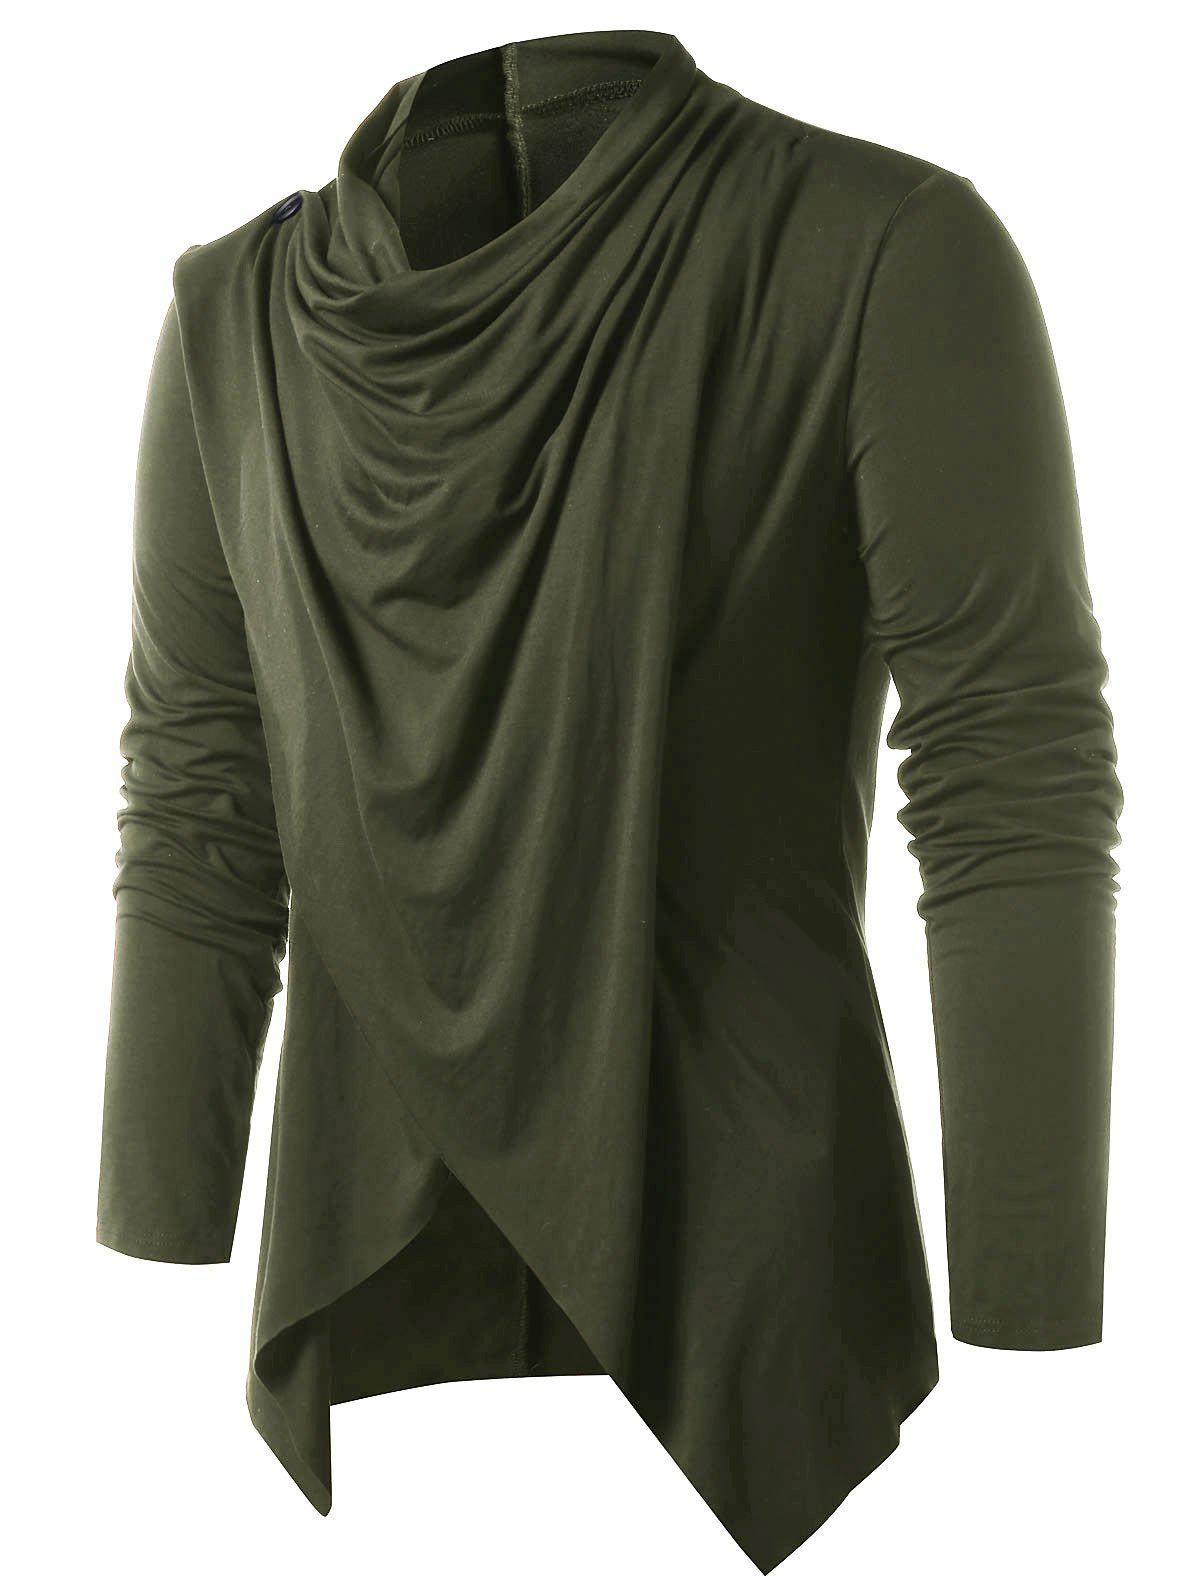 Convertible Asymmetrical Cardigan - ARMY GREEN S